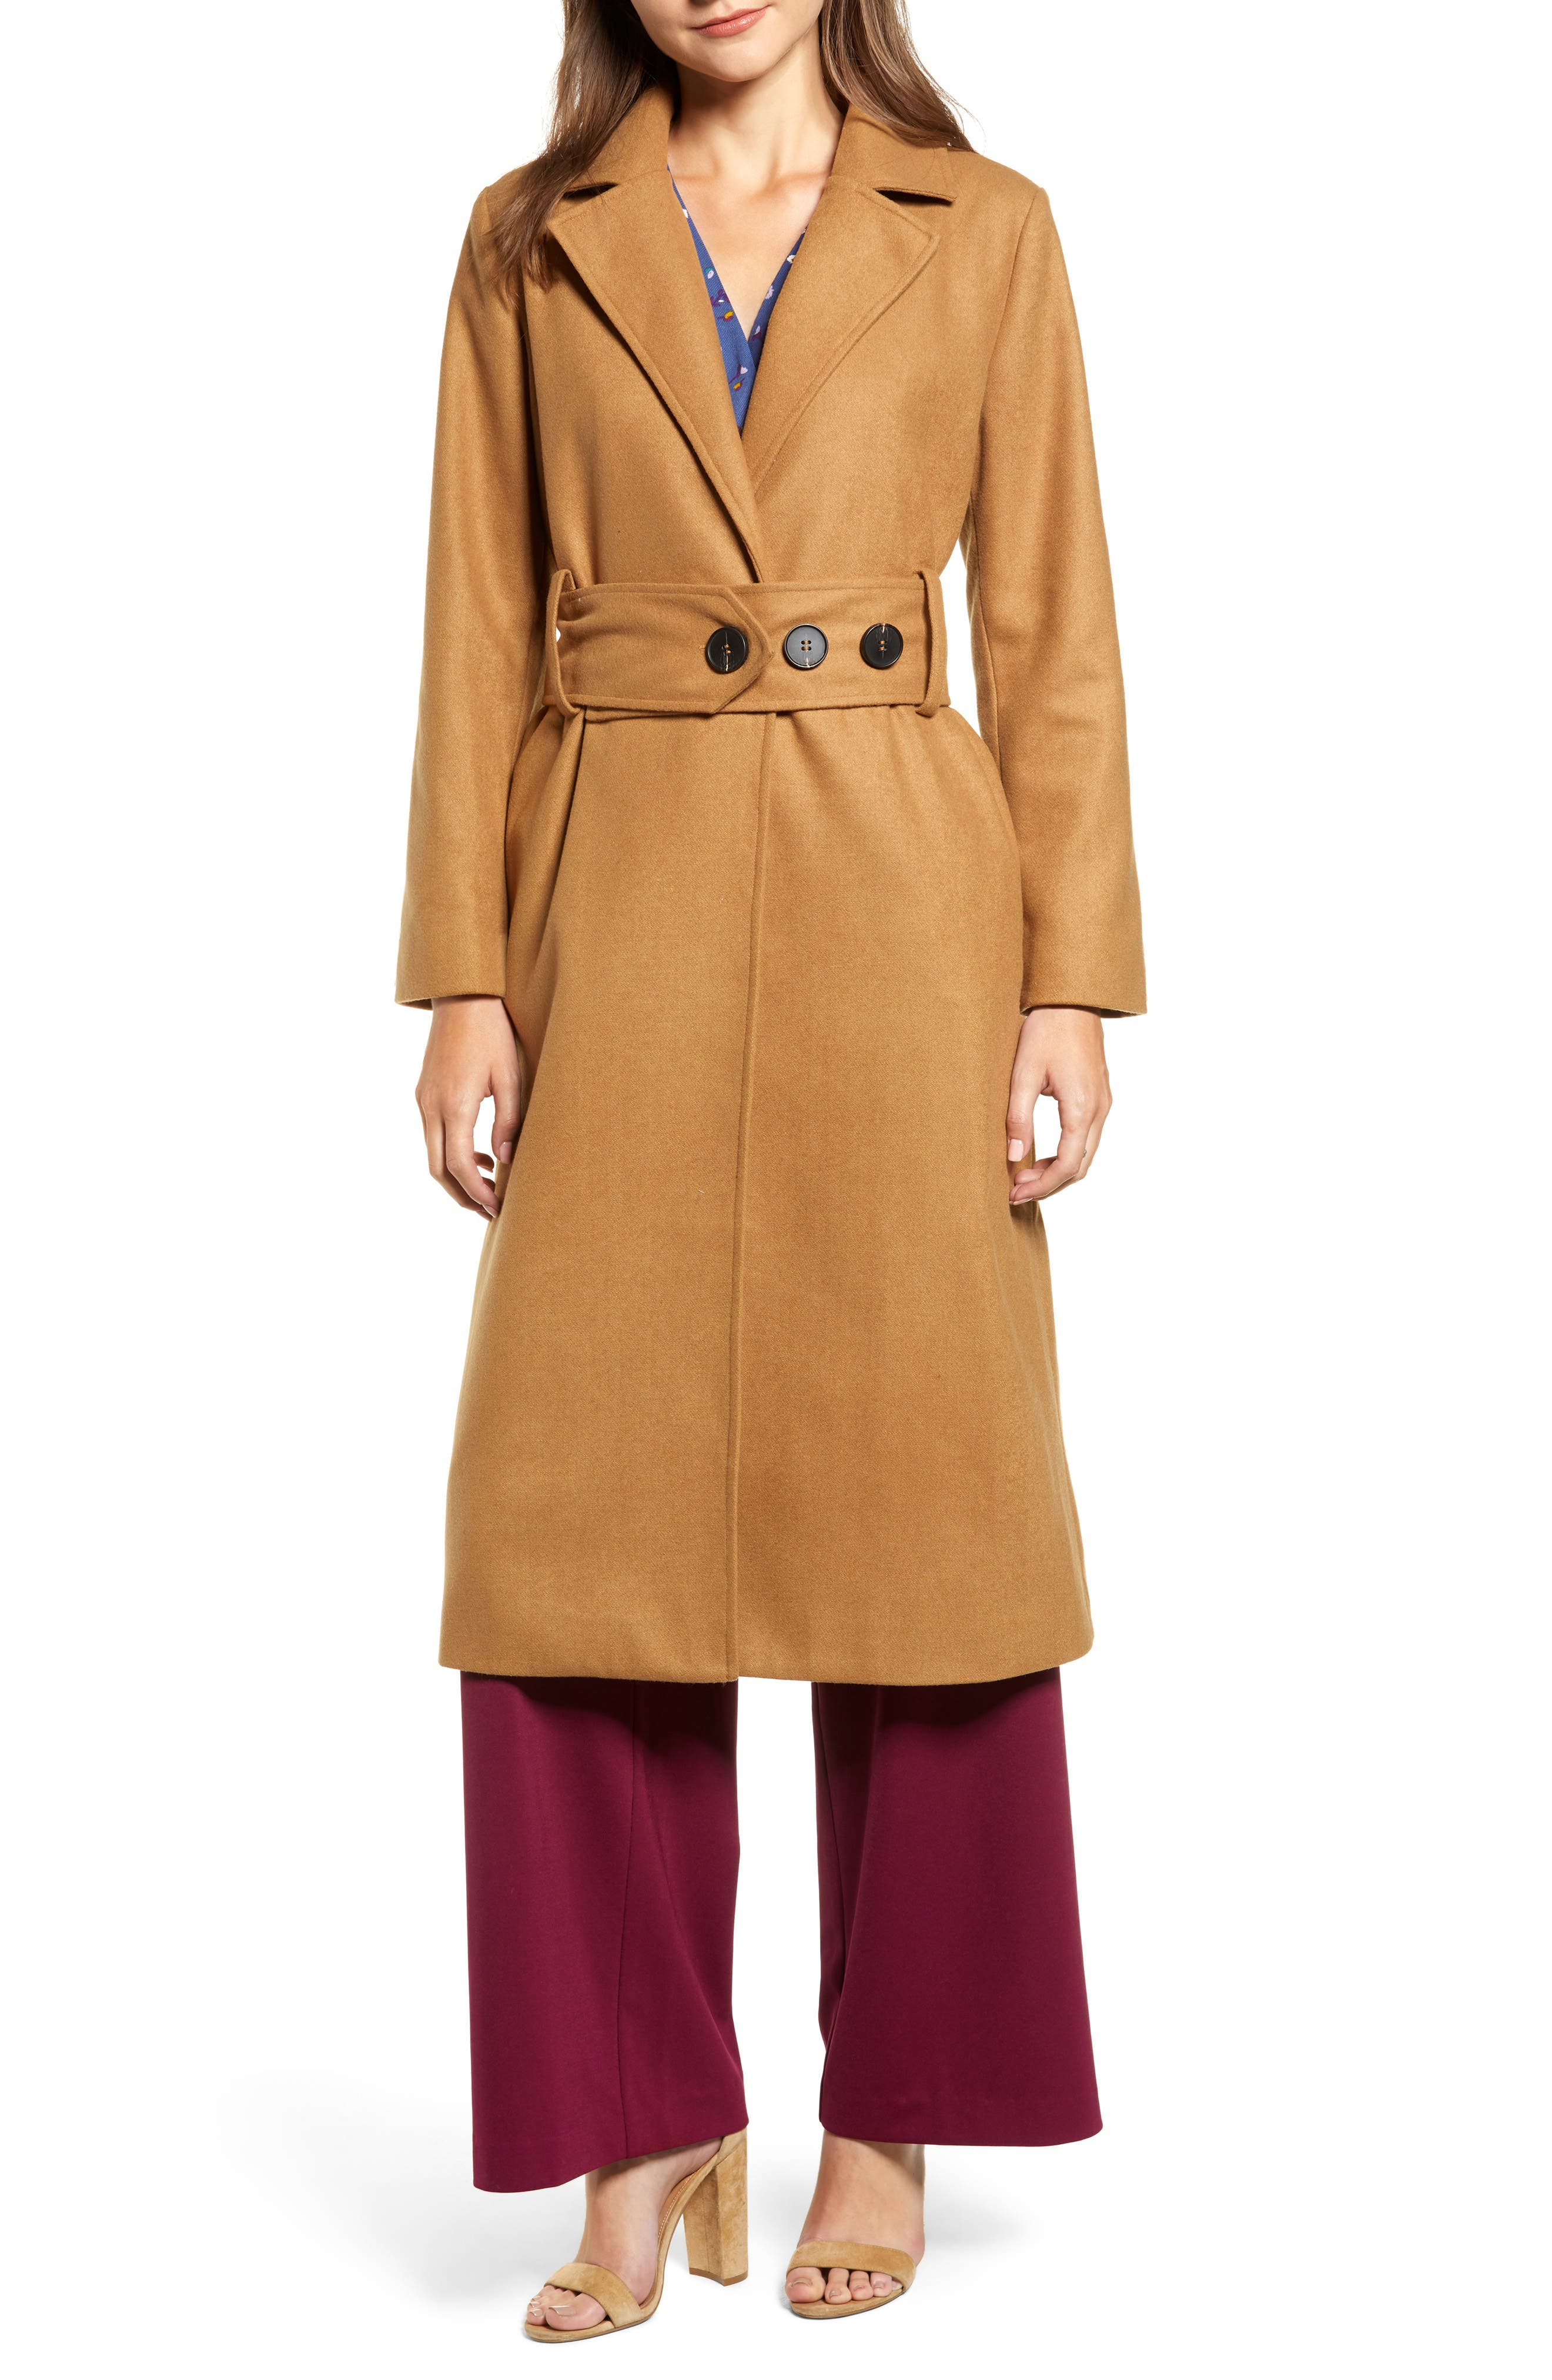 Chriselle Lim Victoria Belted Coat,                             Main thumbnail 1, color,                             CAMEL